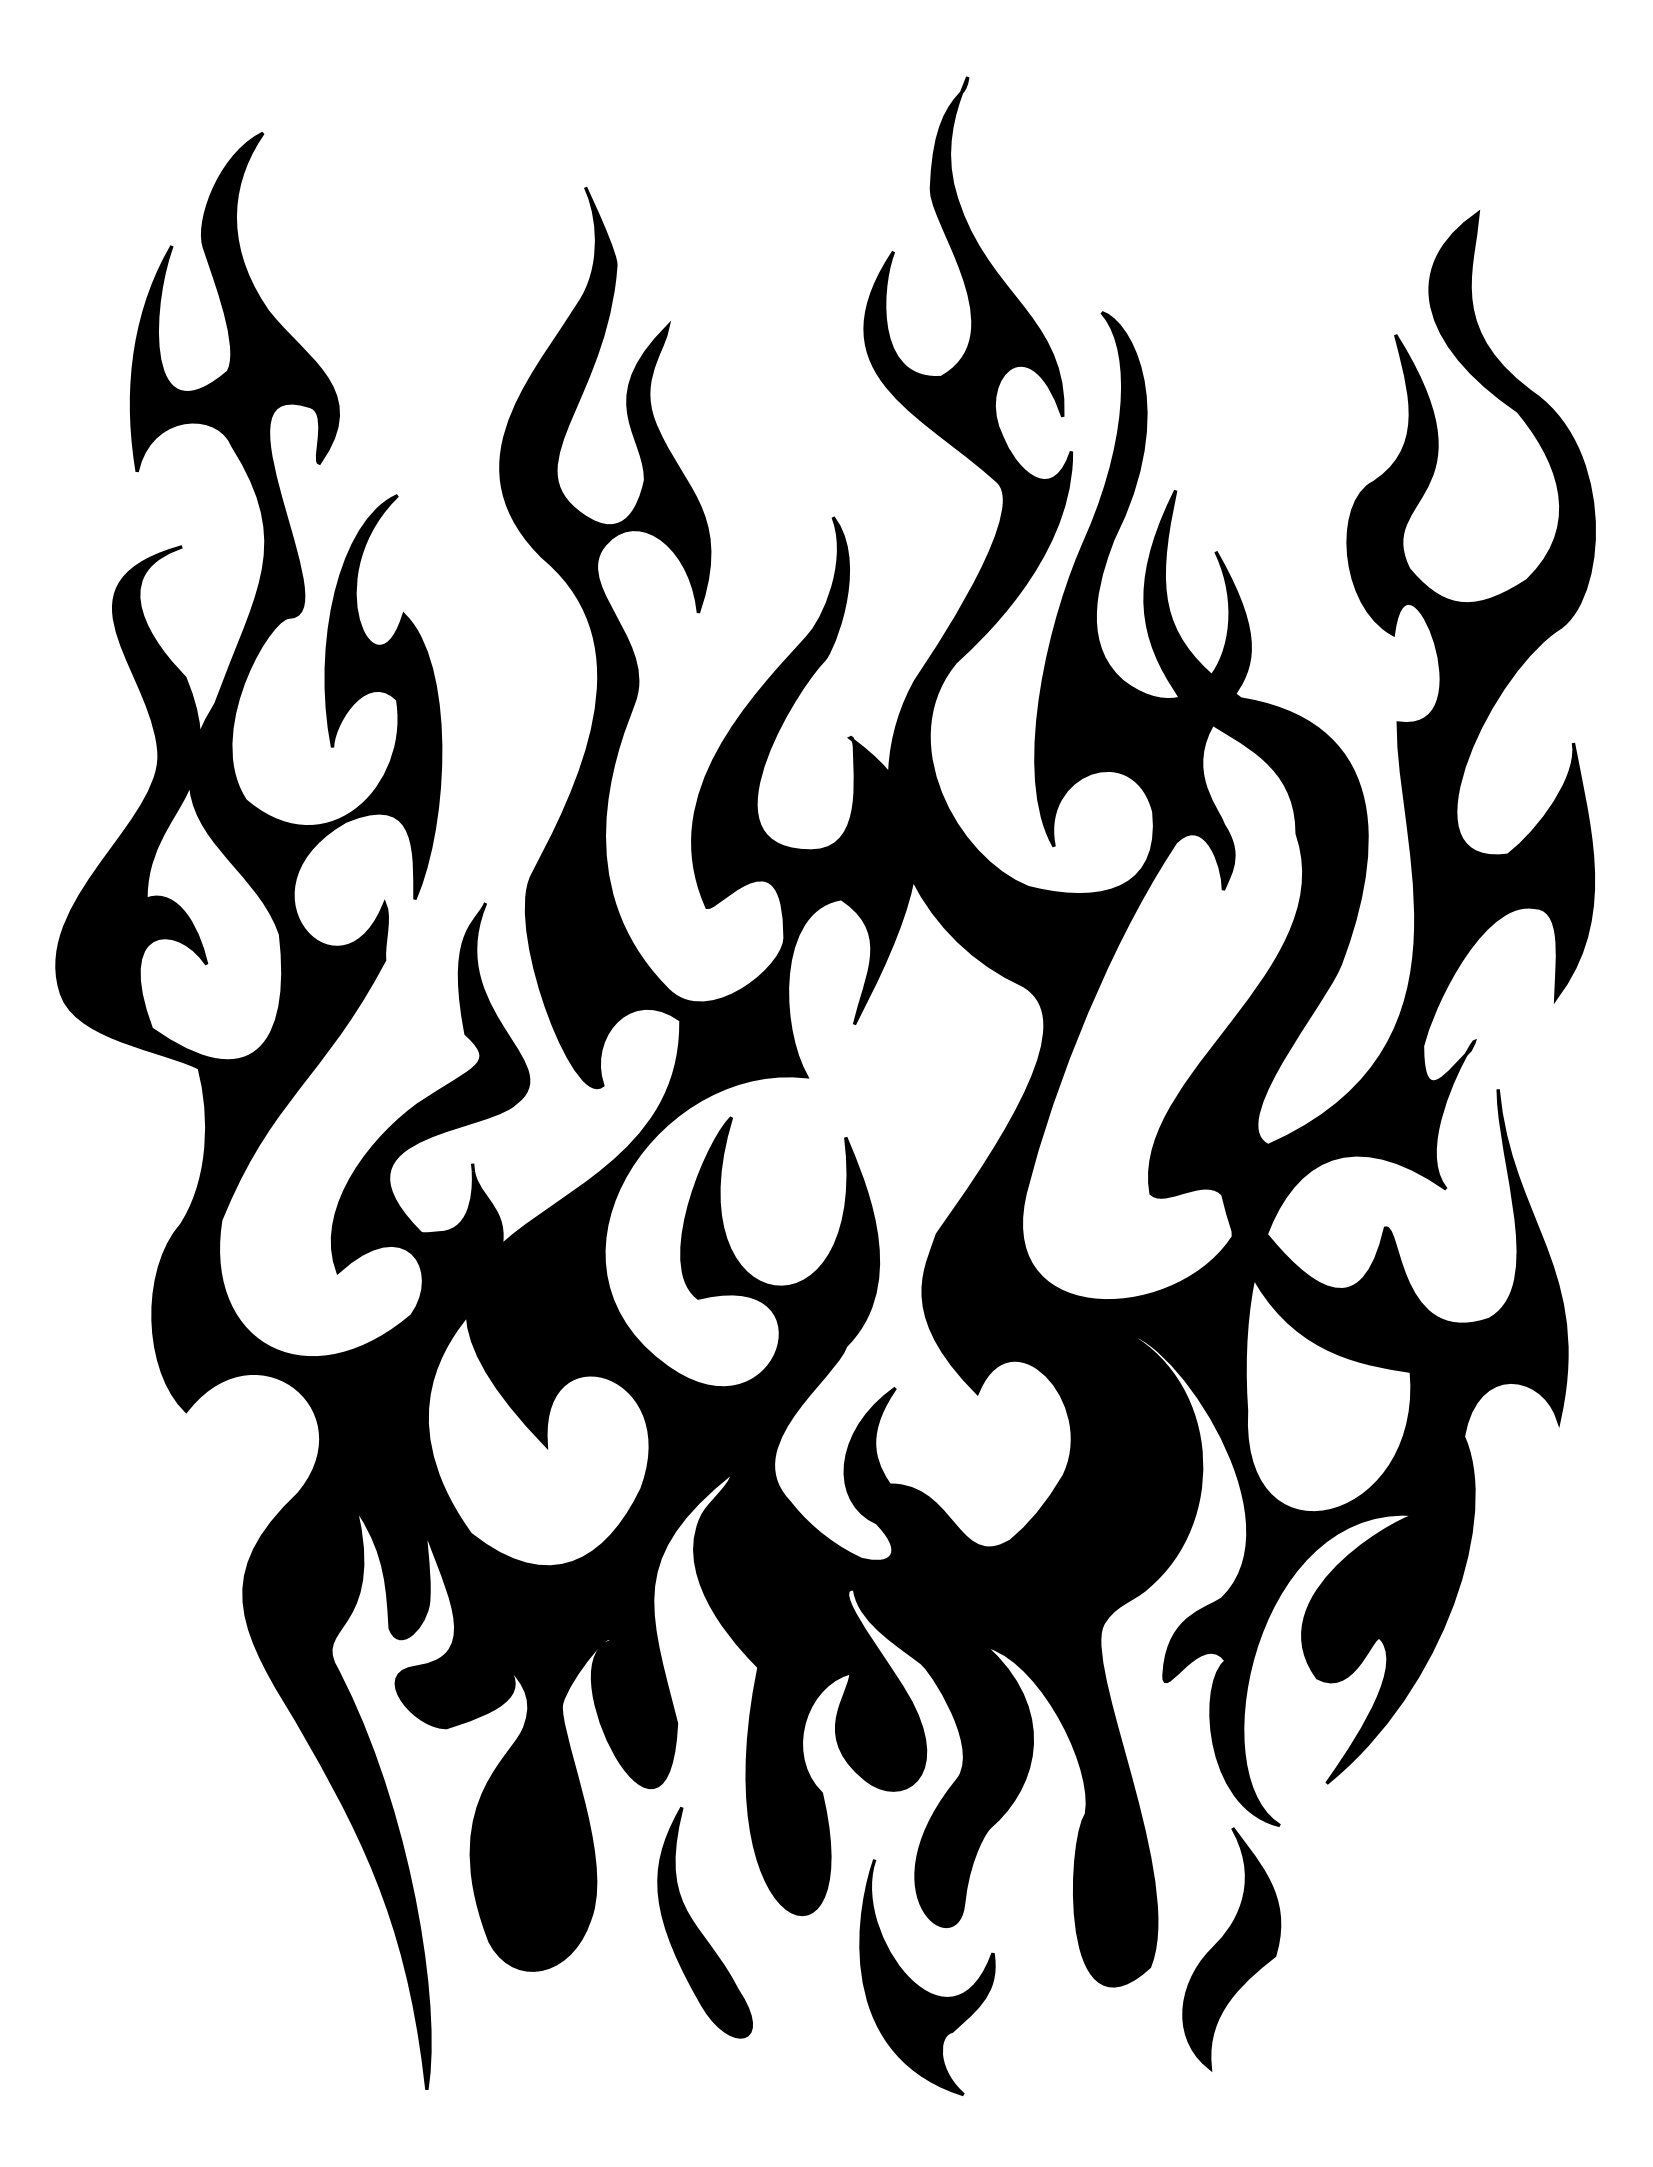 Flame tribal. Pin by stacy judson